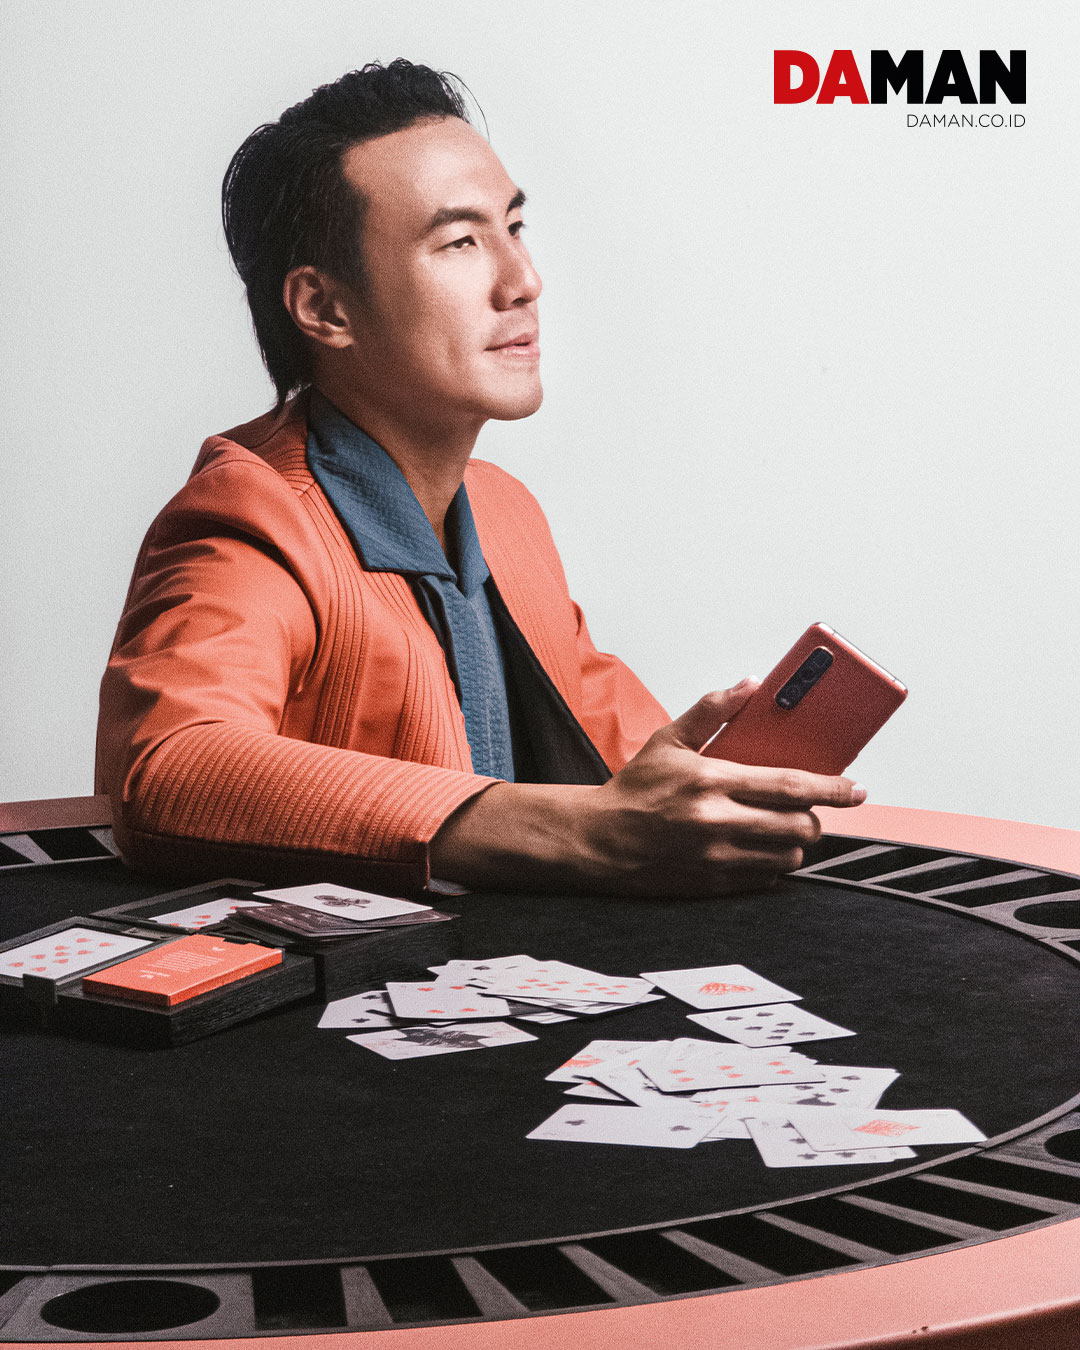 Outfit by Patrick Owen / Phone by OPPO Find X2 Pro / Cards Table OPPO | Patrick Owen with Tea Orange Vegan leather, Studio Intertu